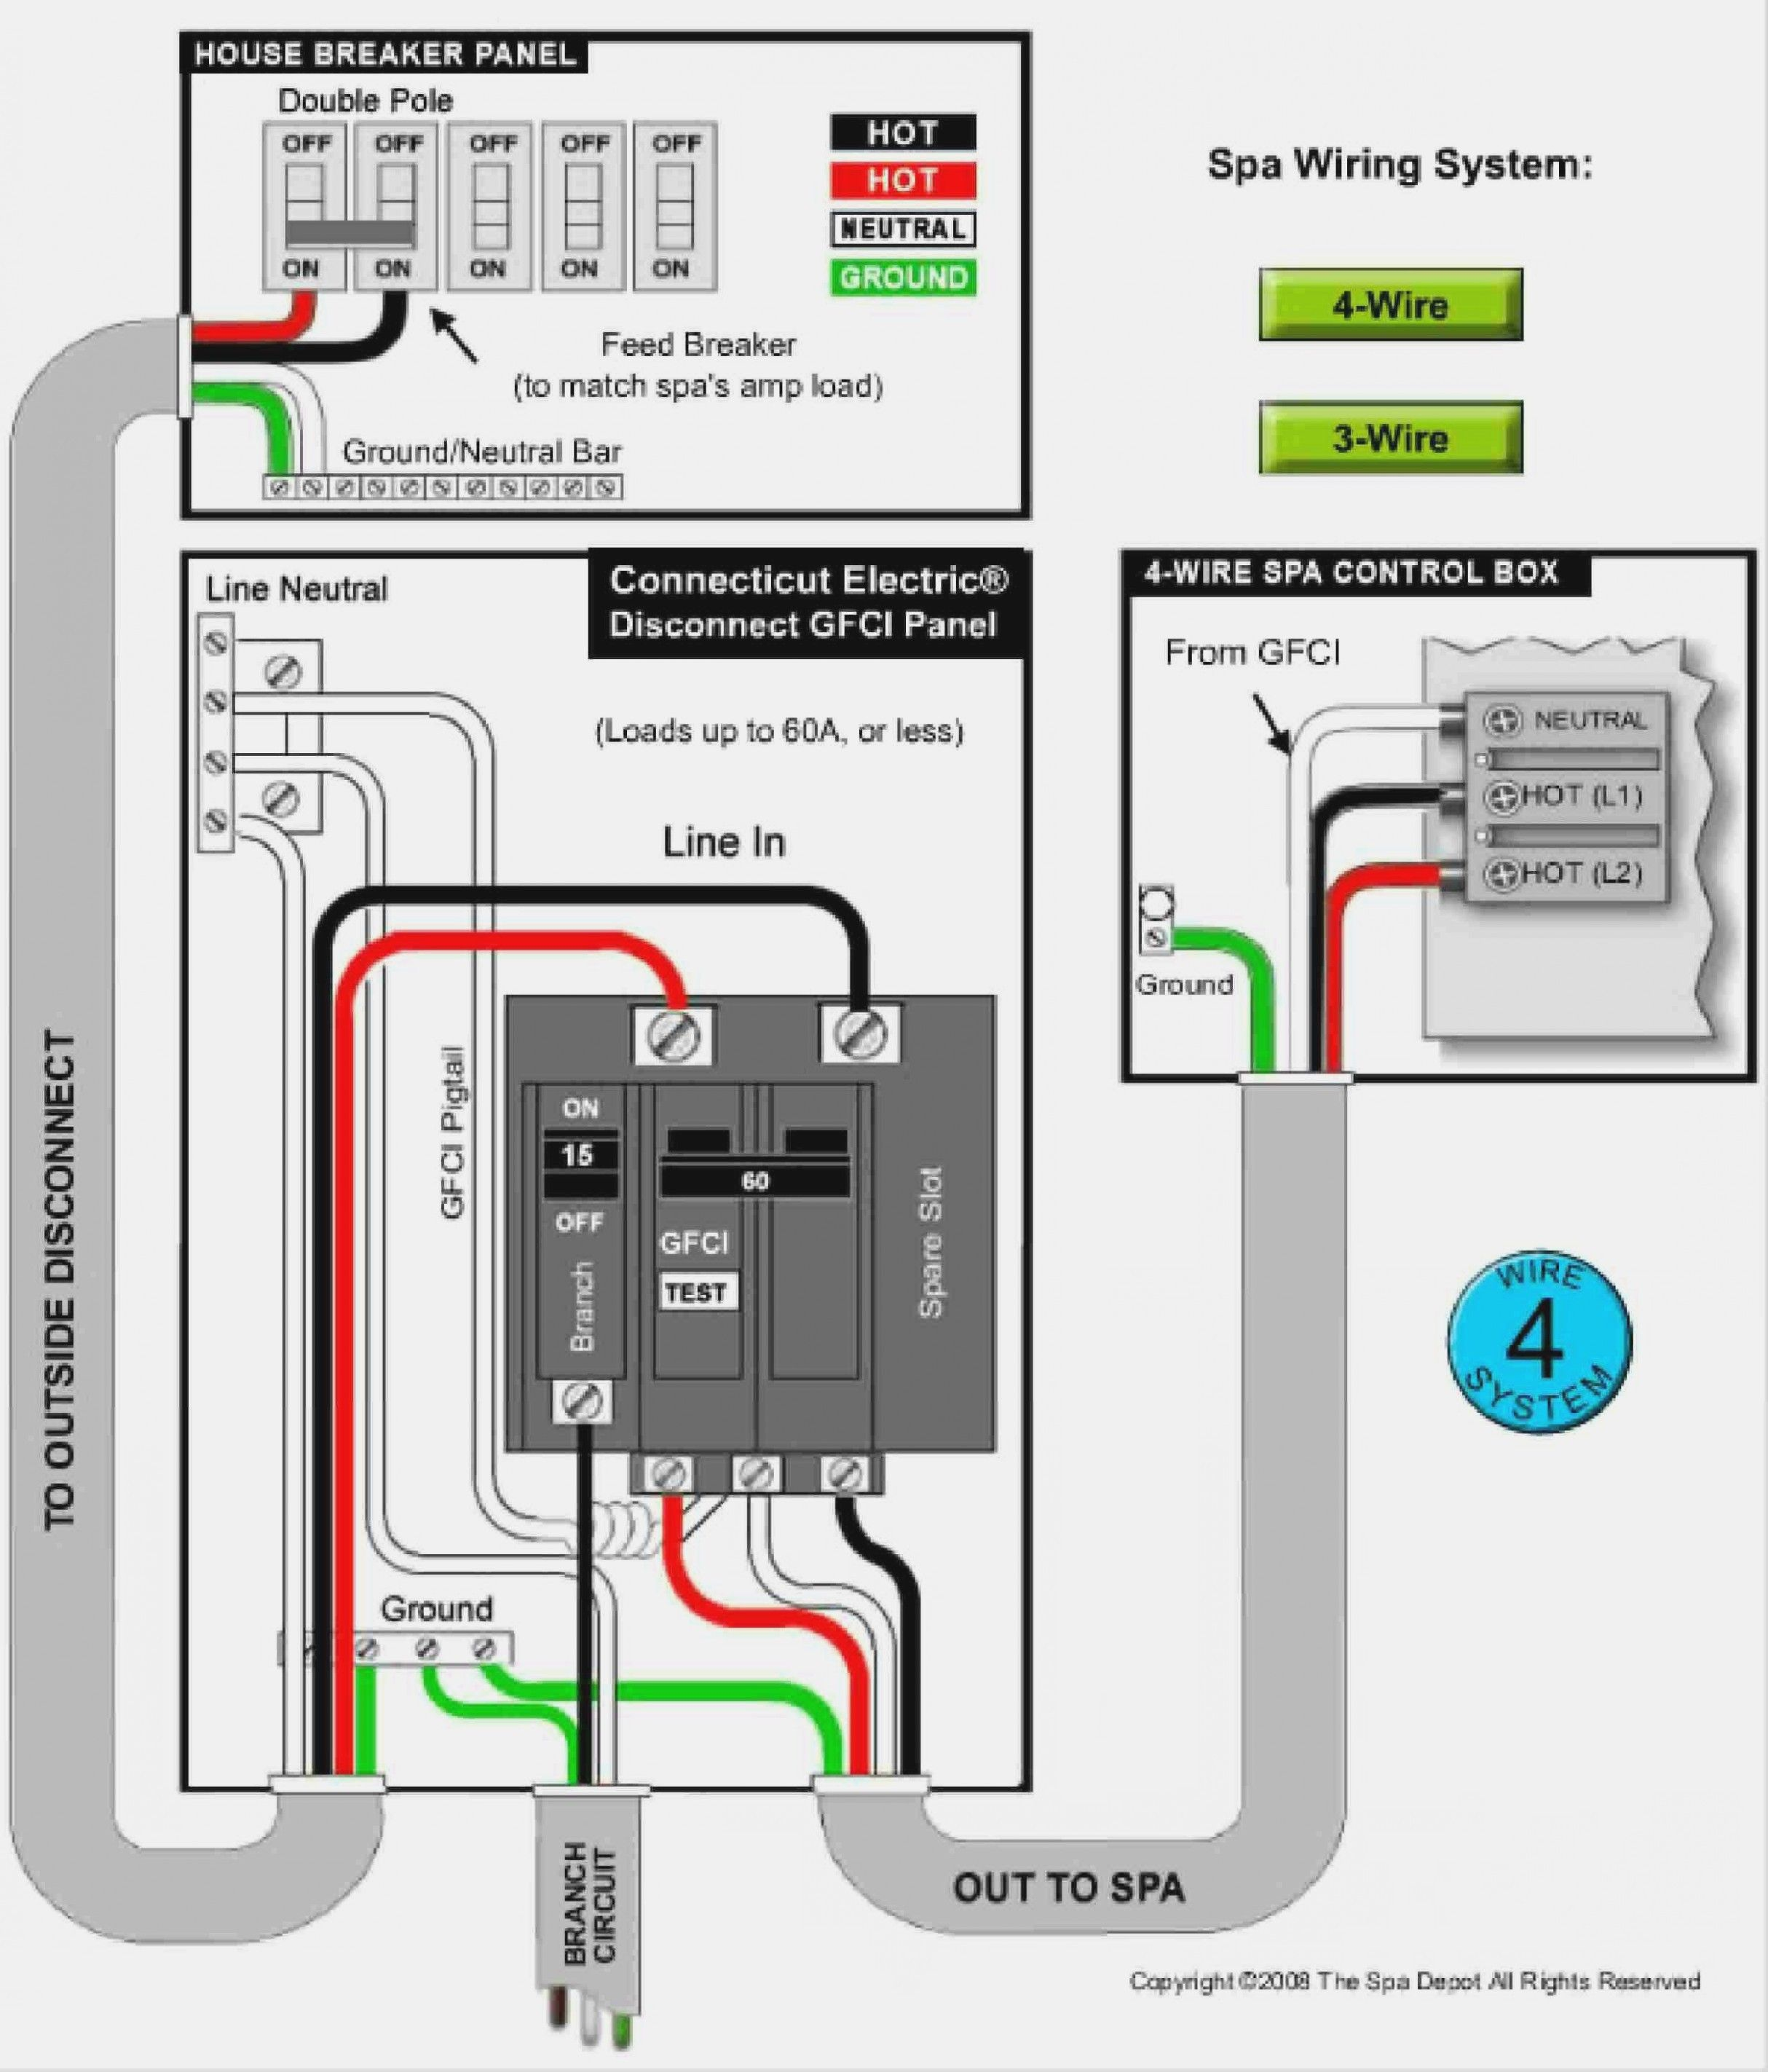 hight resolution of hot tub wiring schematic wiring diagram toolbox download diagram for hooking up a pool hot tub or spa